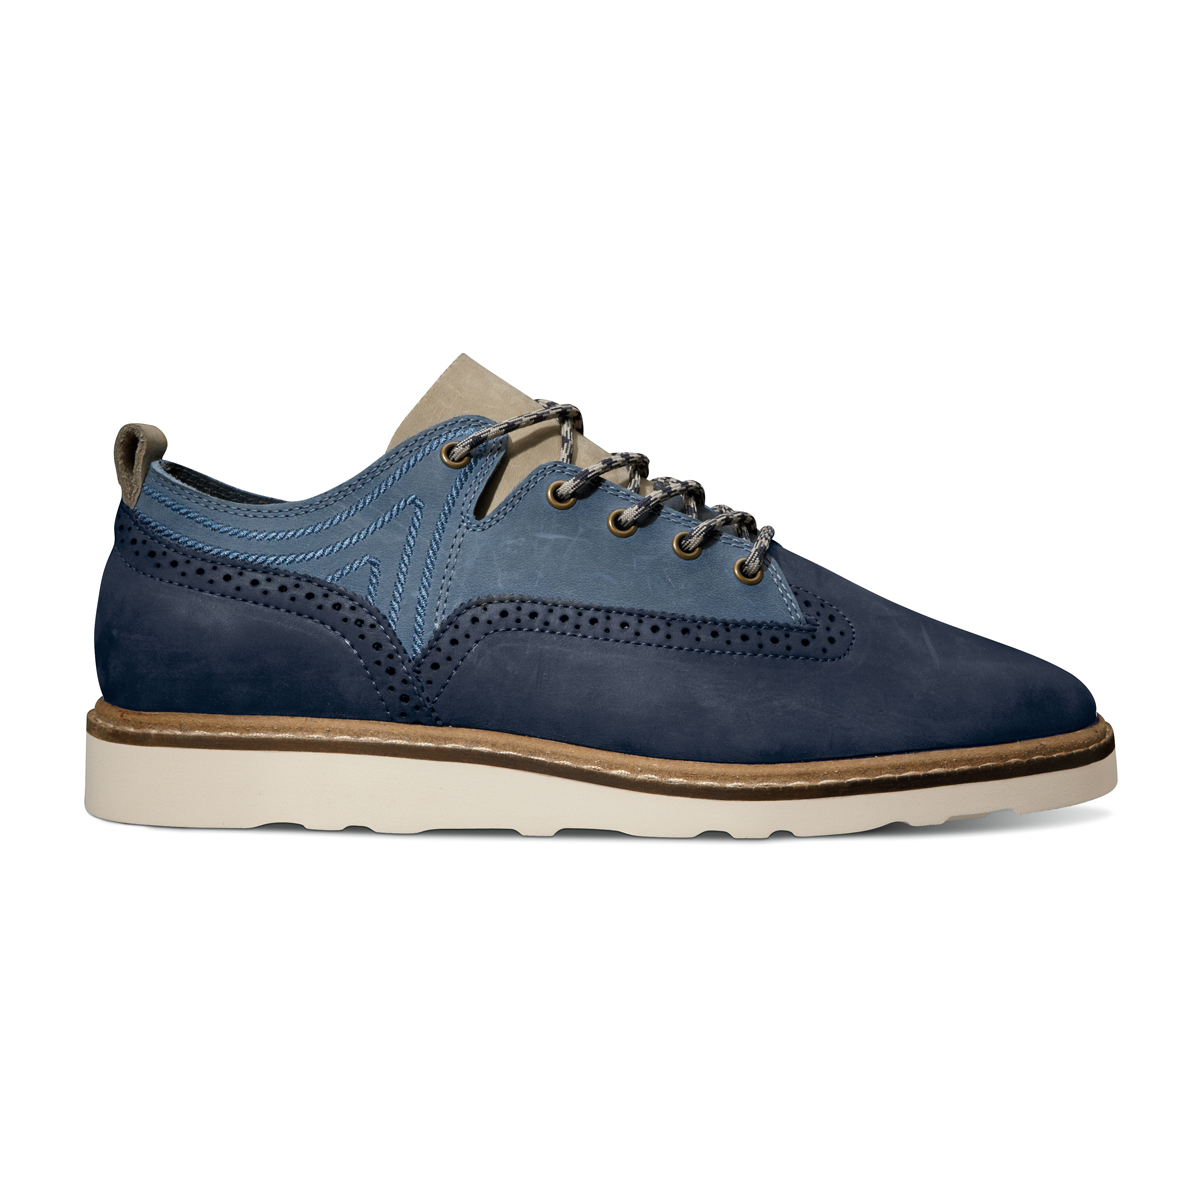 Vault-by-Vans-x-Taka-Hayashi_TH-008-LX_Leather_Dark-Navy_2013